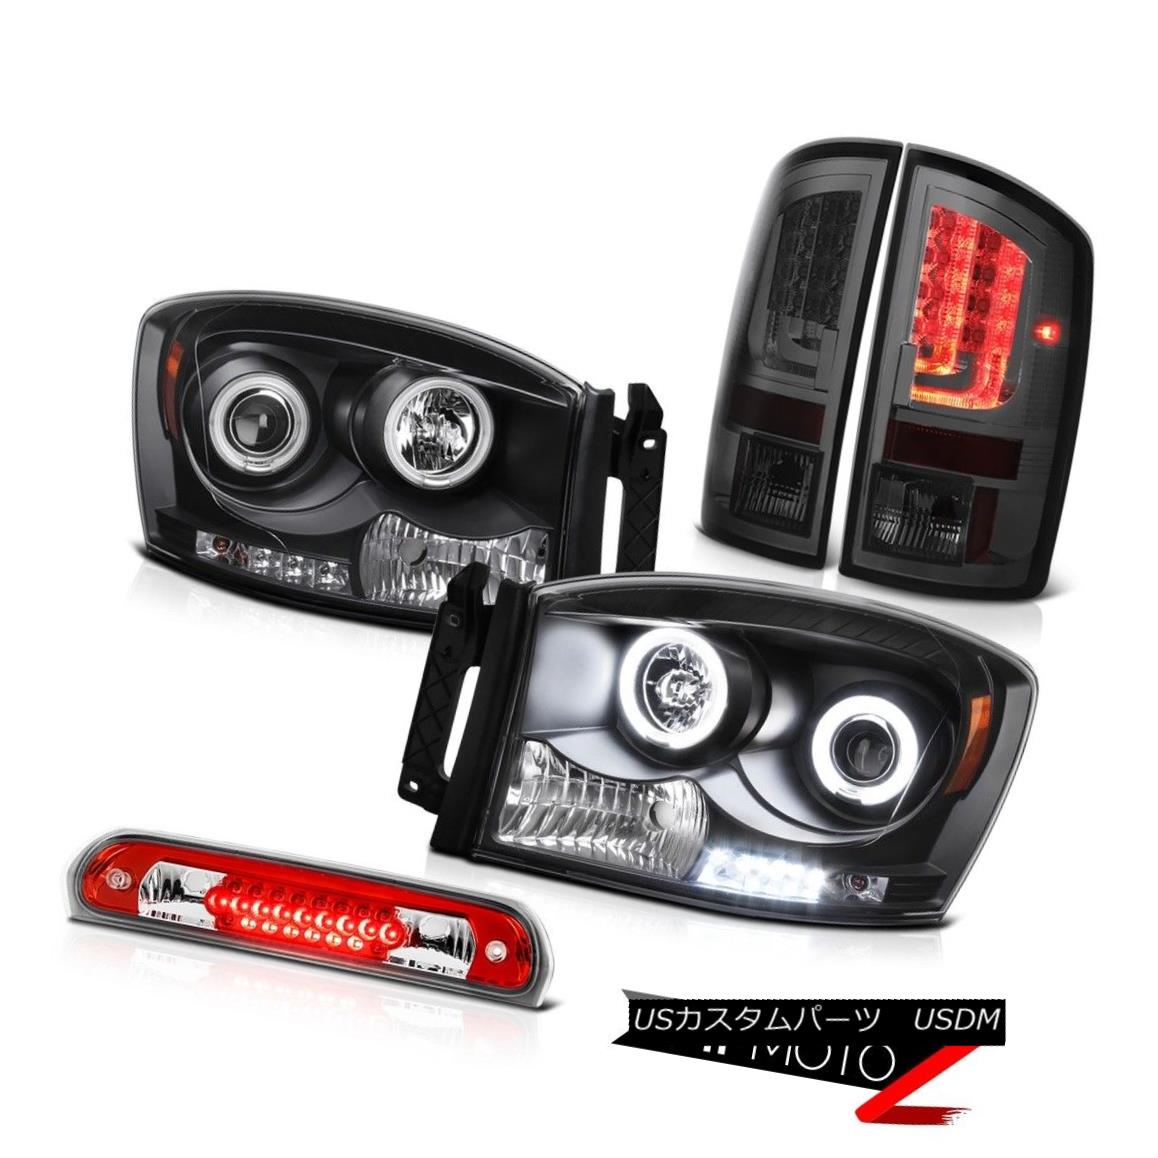 テールライト 2006 Ram WS Tail Brake Lamps Projector Headlights Red Roof Lamp Ccfl Rim NeweST 2006 Ram WSテールブレーキランププロジェクターヘッドライト赤い屋根のランプCcfl Rim NeweST